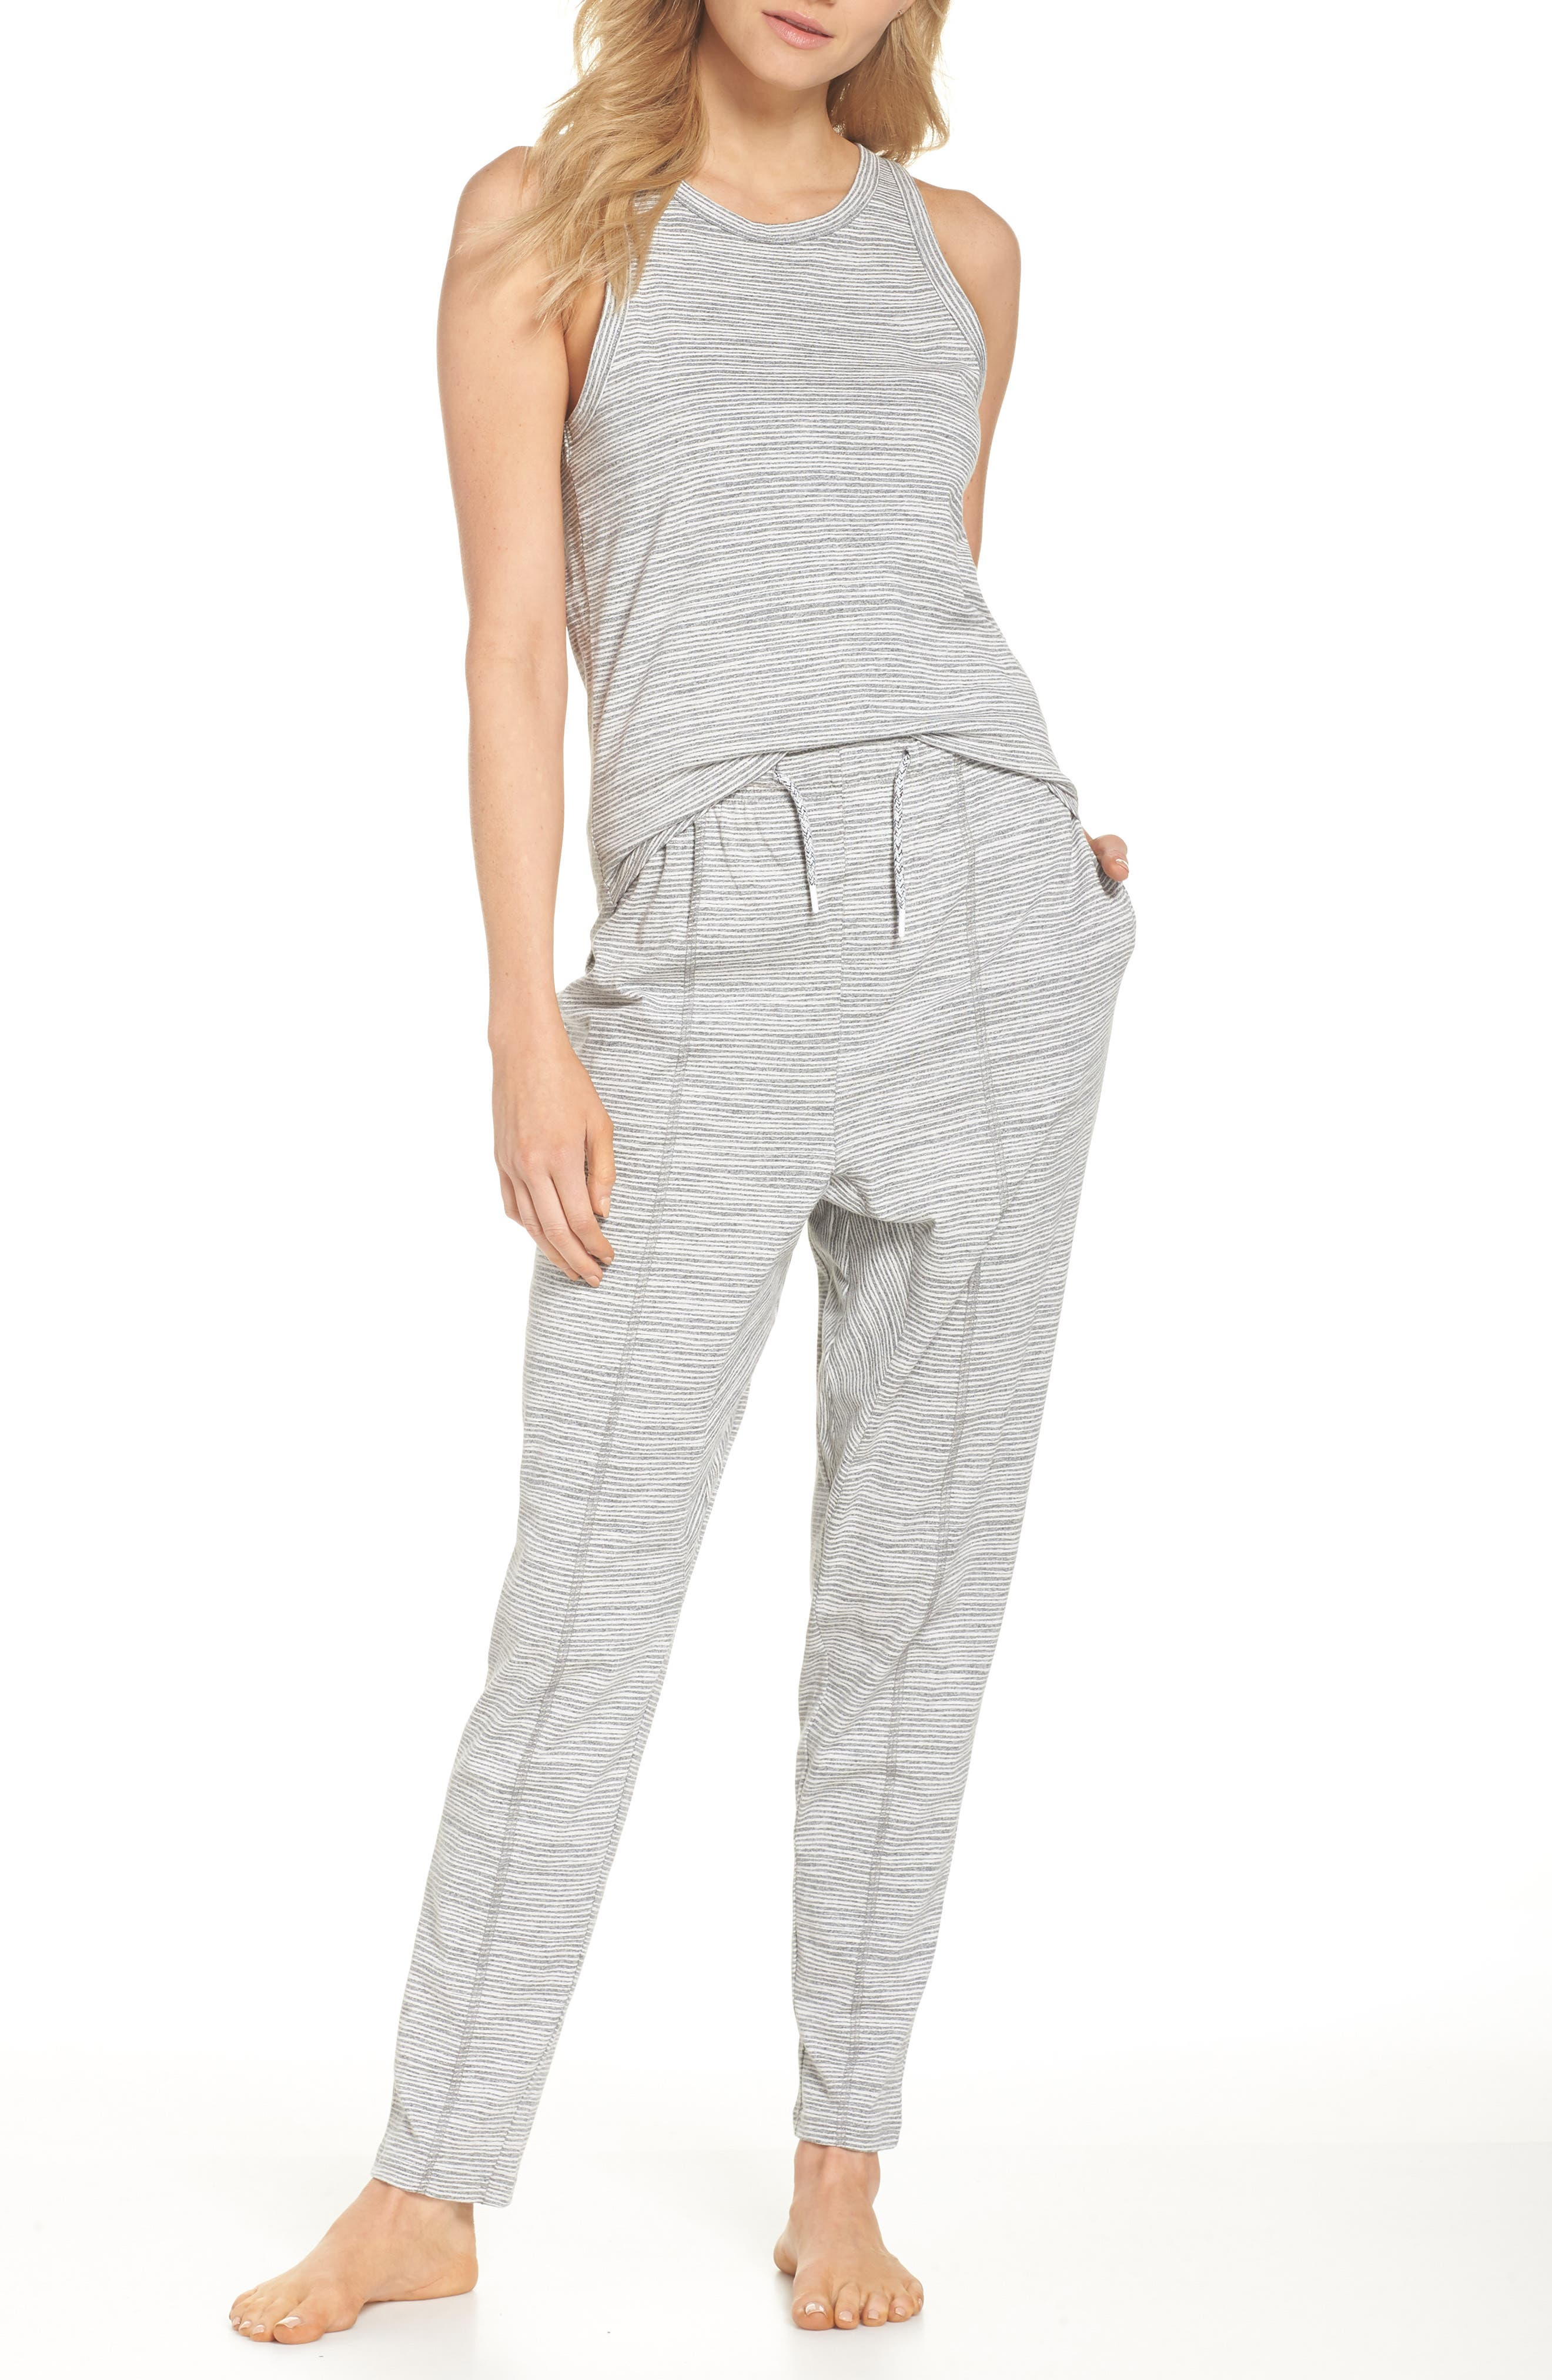 Ash Stripe Lounge Pants,                             Alternate thumbnail 5, color,                             Ash Marle Stripe